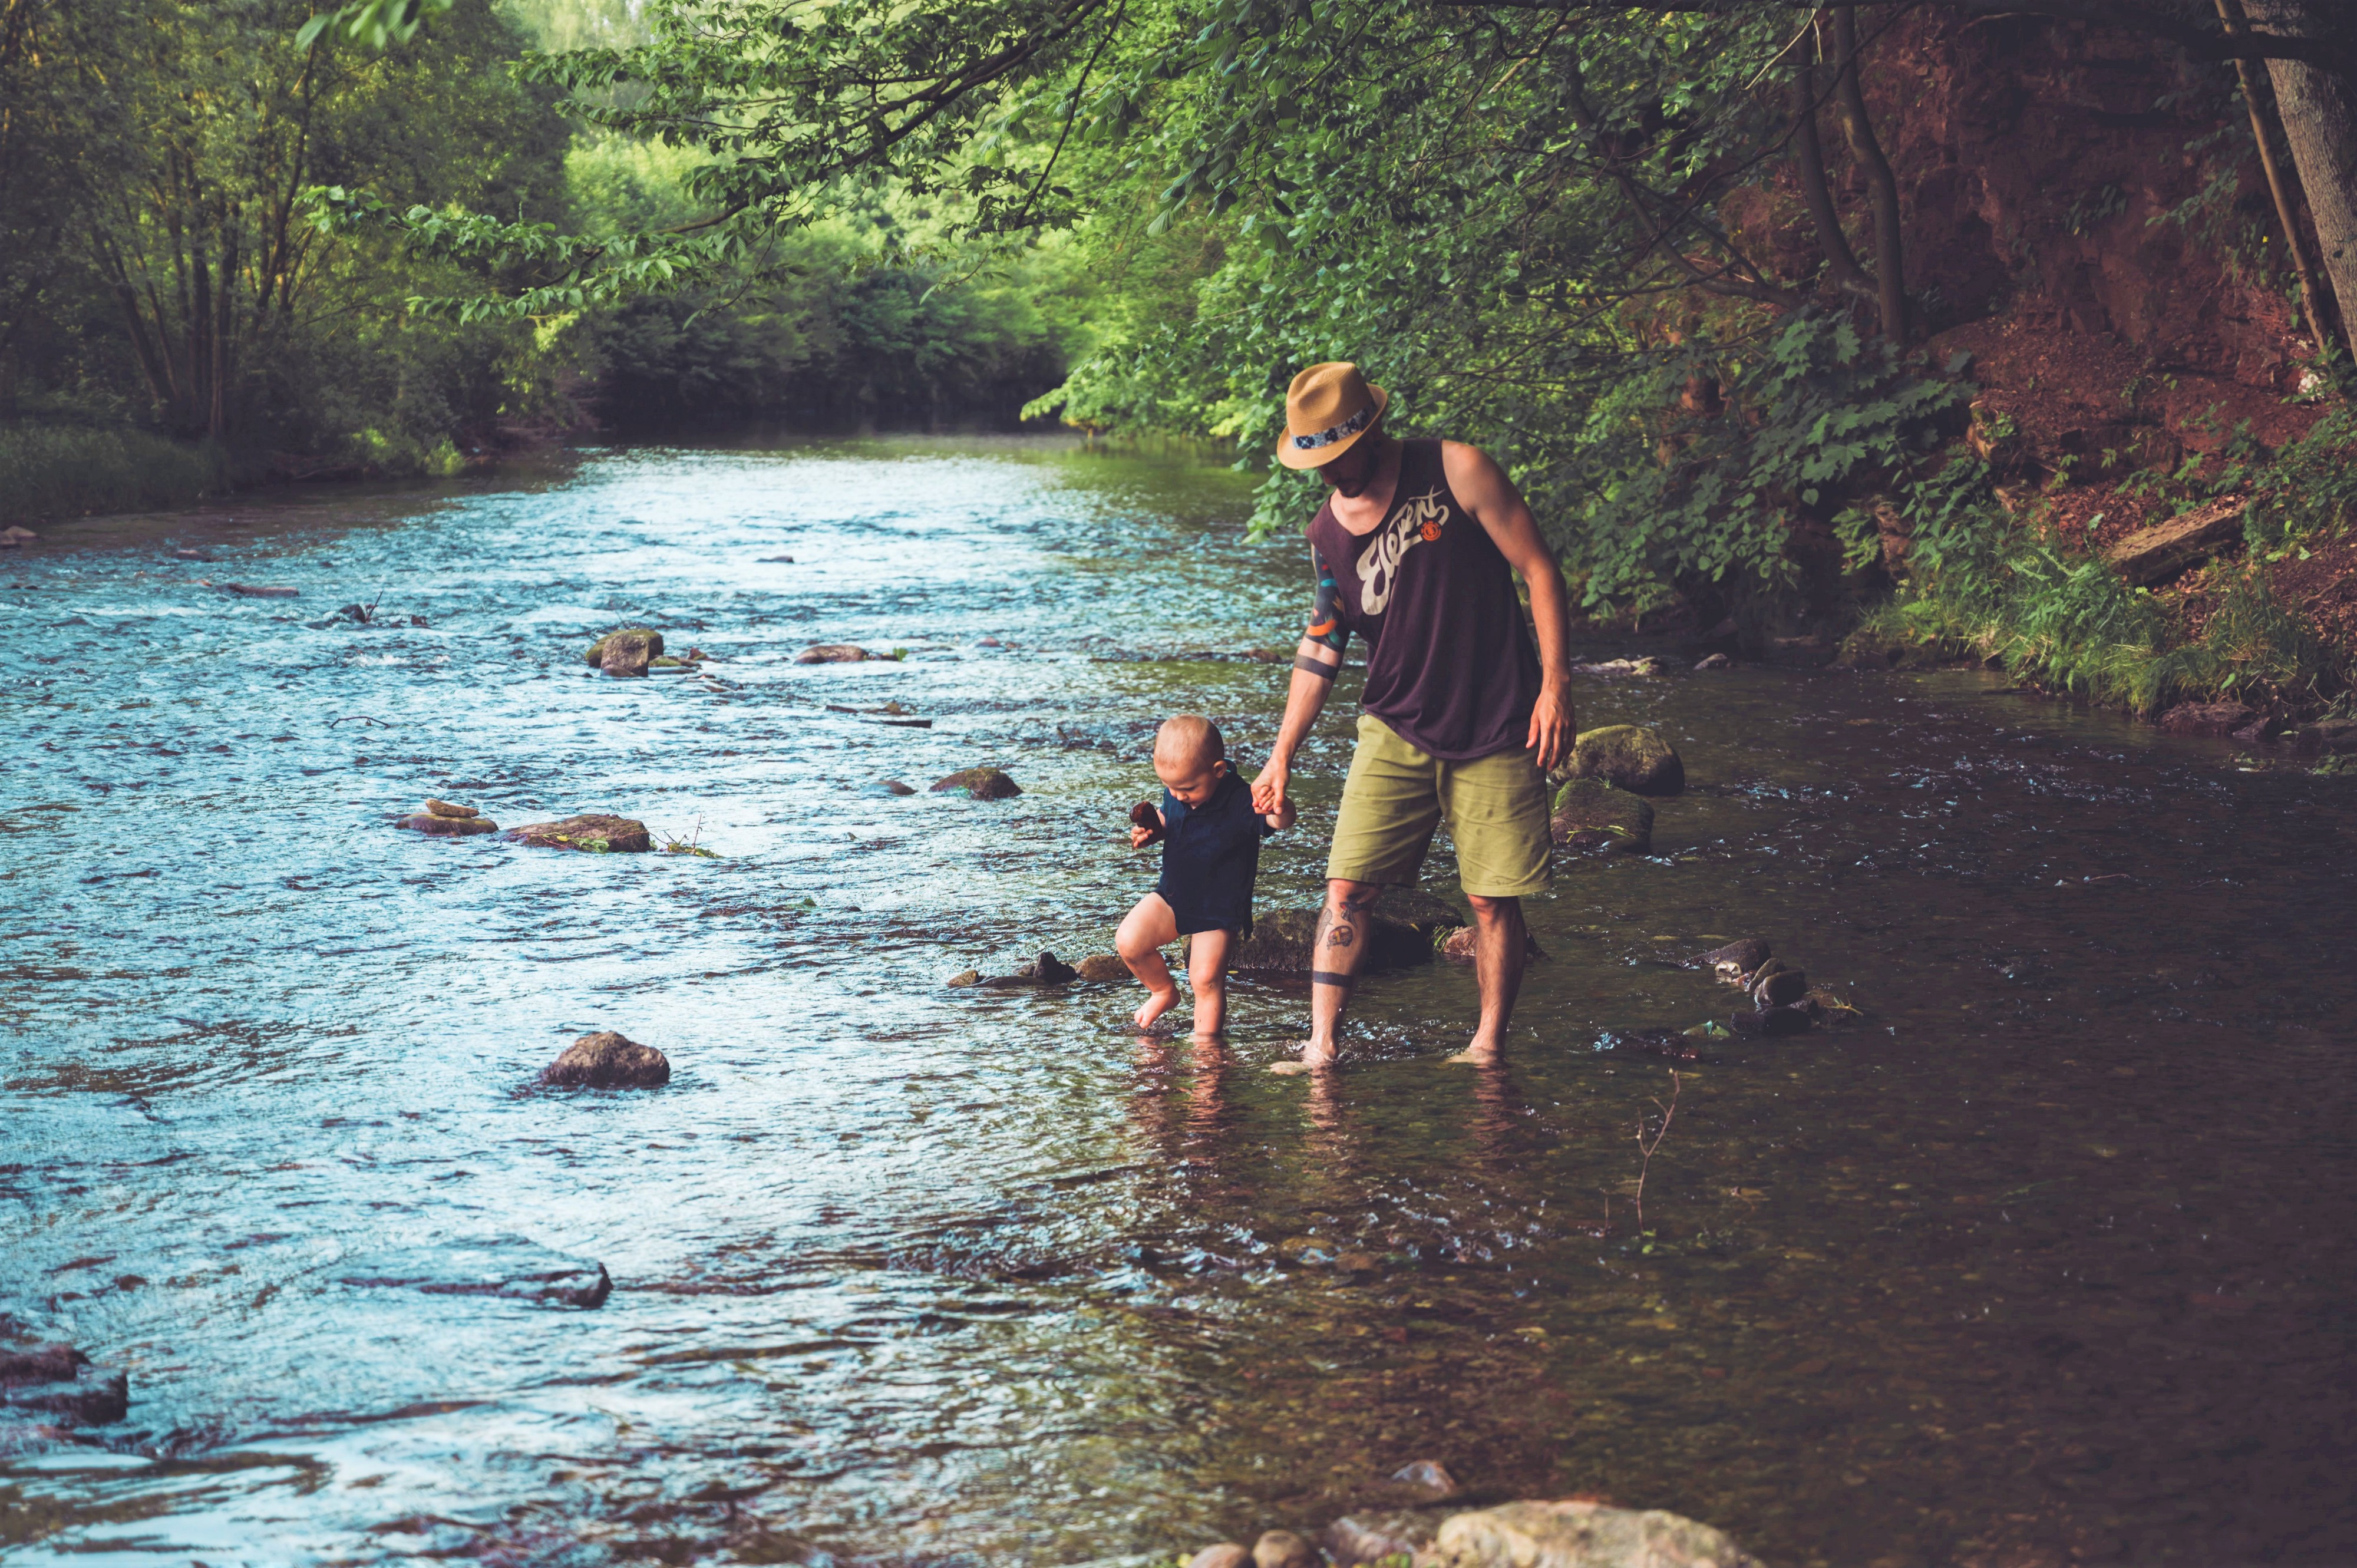 man wearing hat sleeveless shirt green shorts holding young child's hand walking through river in forest